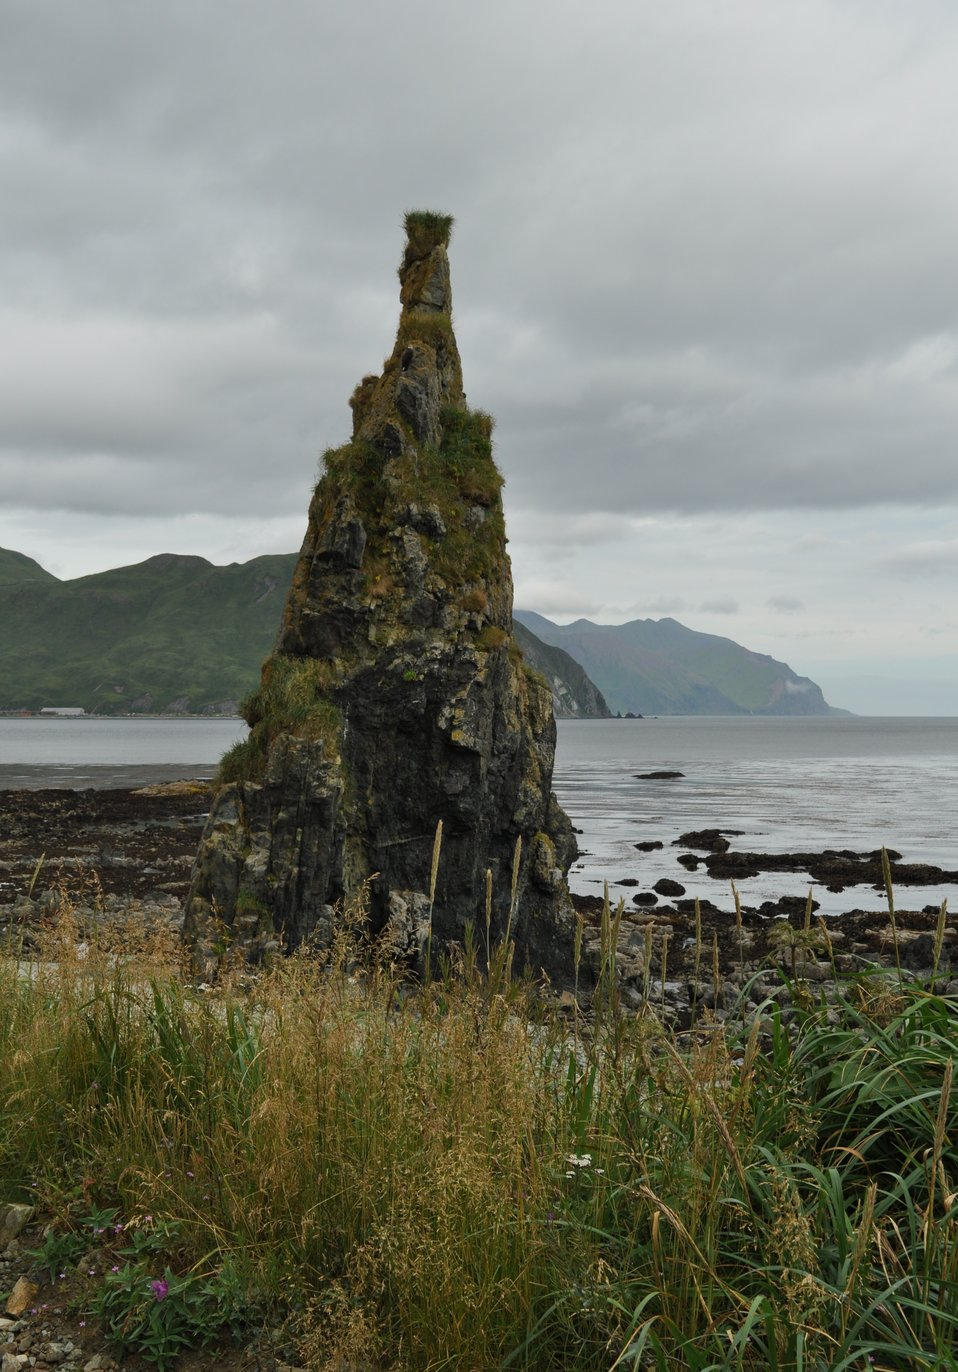 A small rock spire at the edge of the ocean.  Perhaps a small pinnacle rock prior to geological uplift.